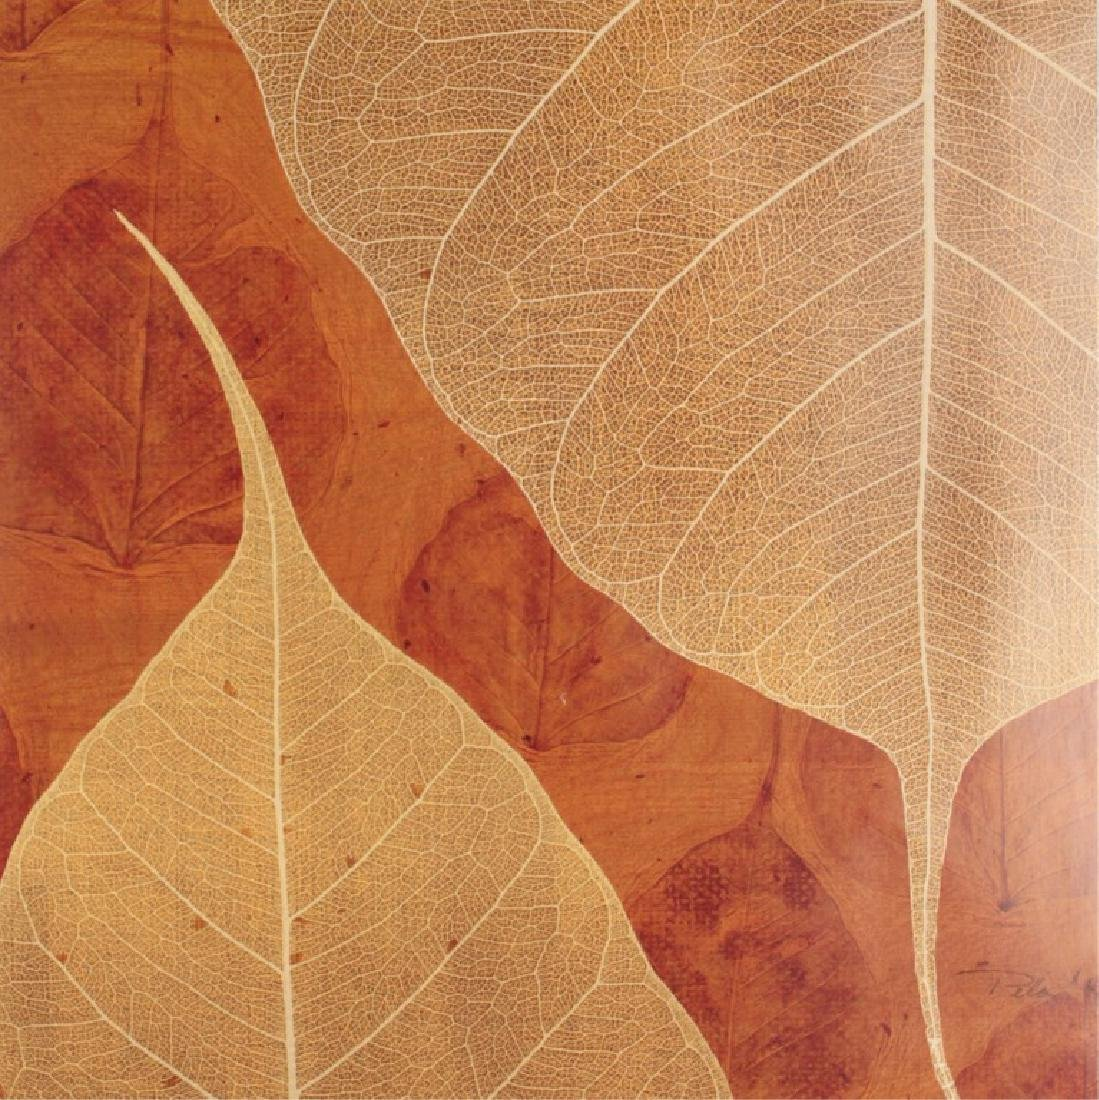 MATTED NATURAL PLANT LEAF COLLAGE